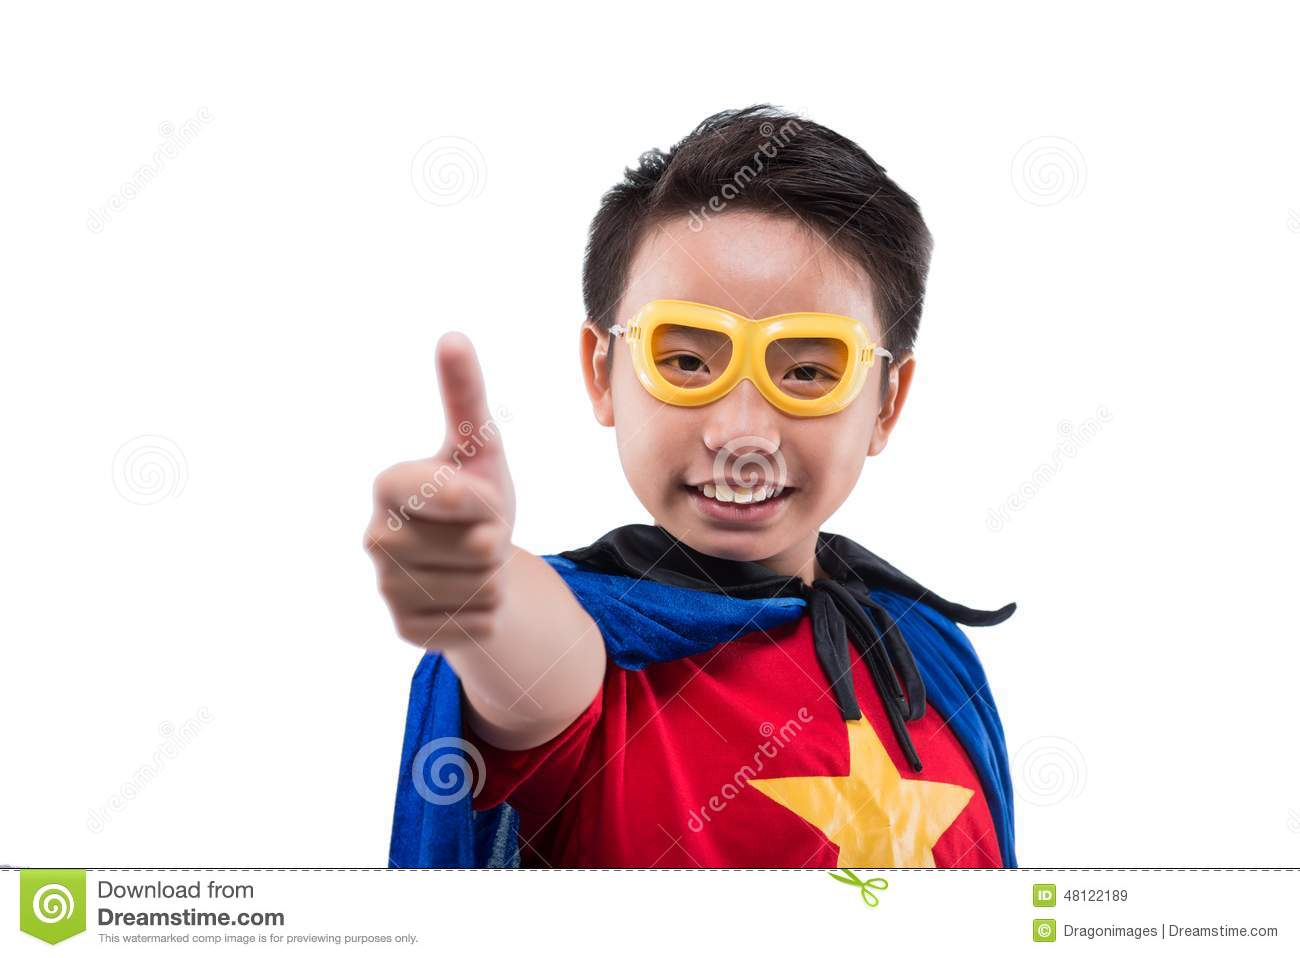 Superman thumbs up question removed